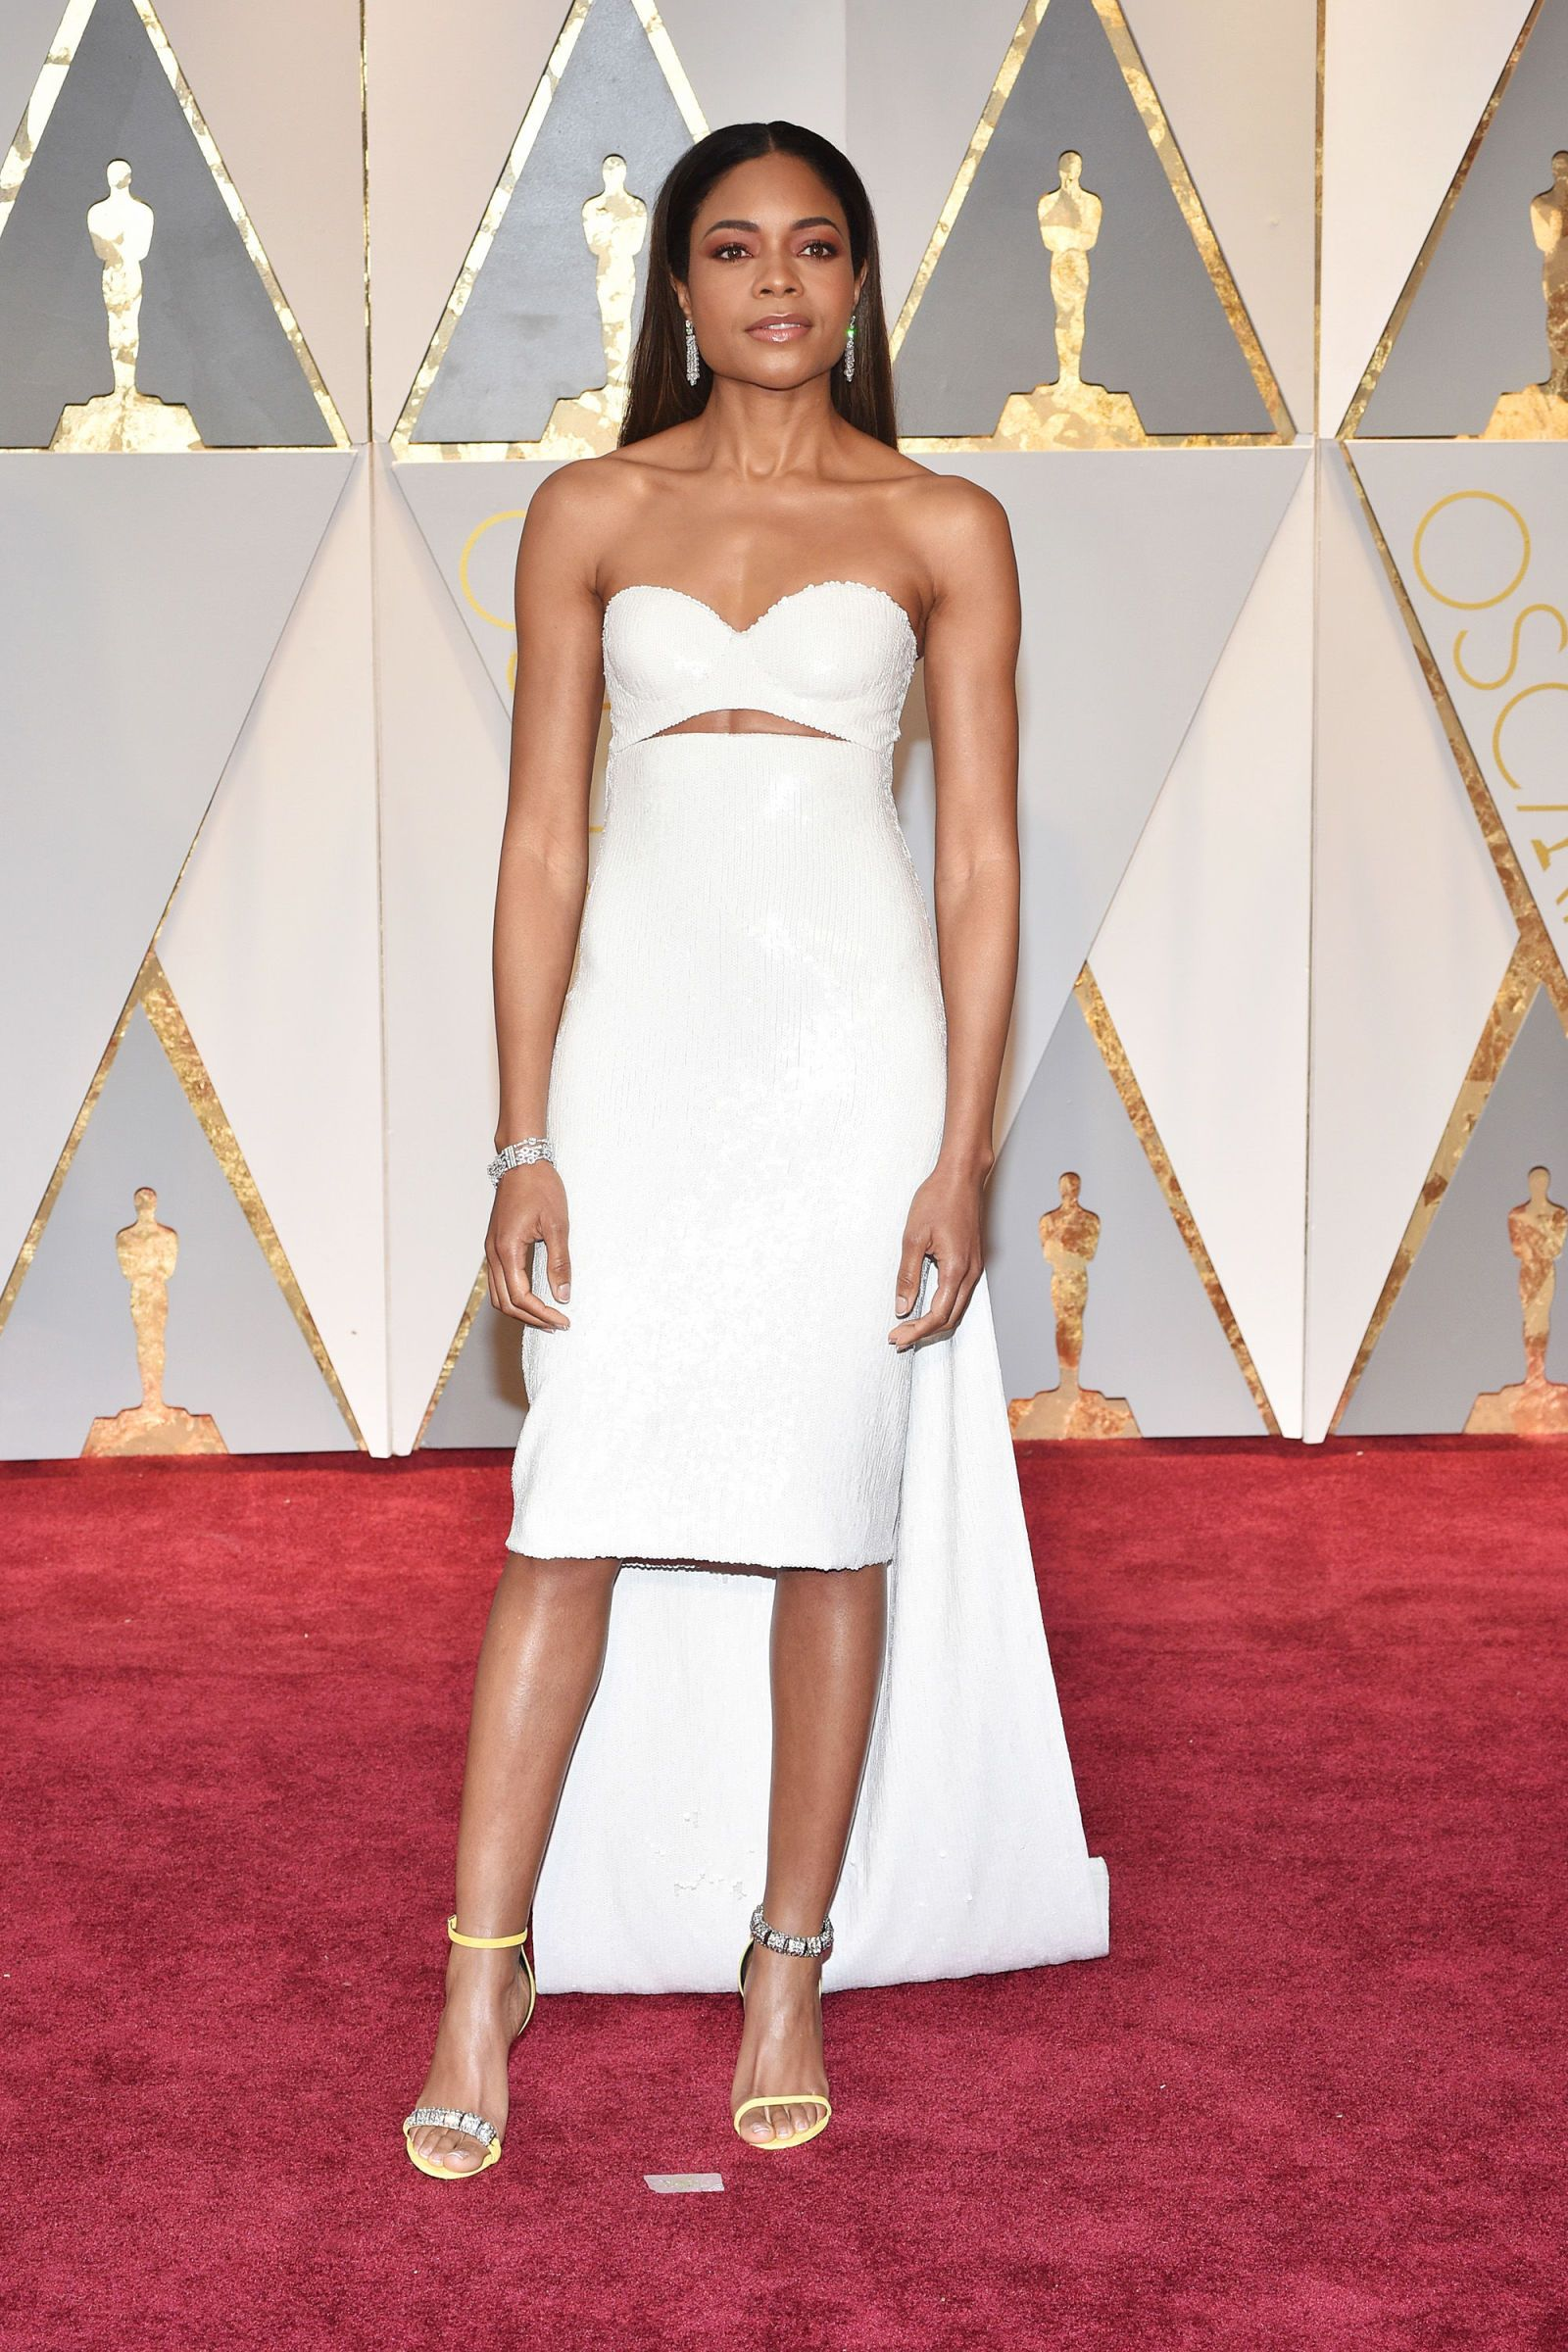 Naomi Harris Looks Stunning In This Whiteweddingdress Inspired Gown Oscars2017